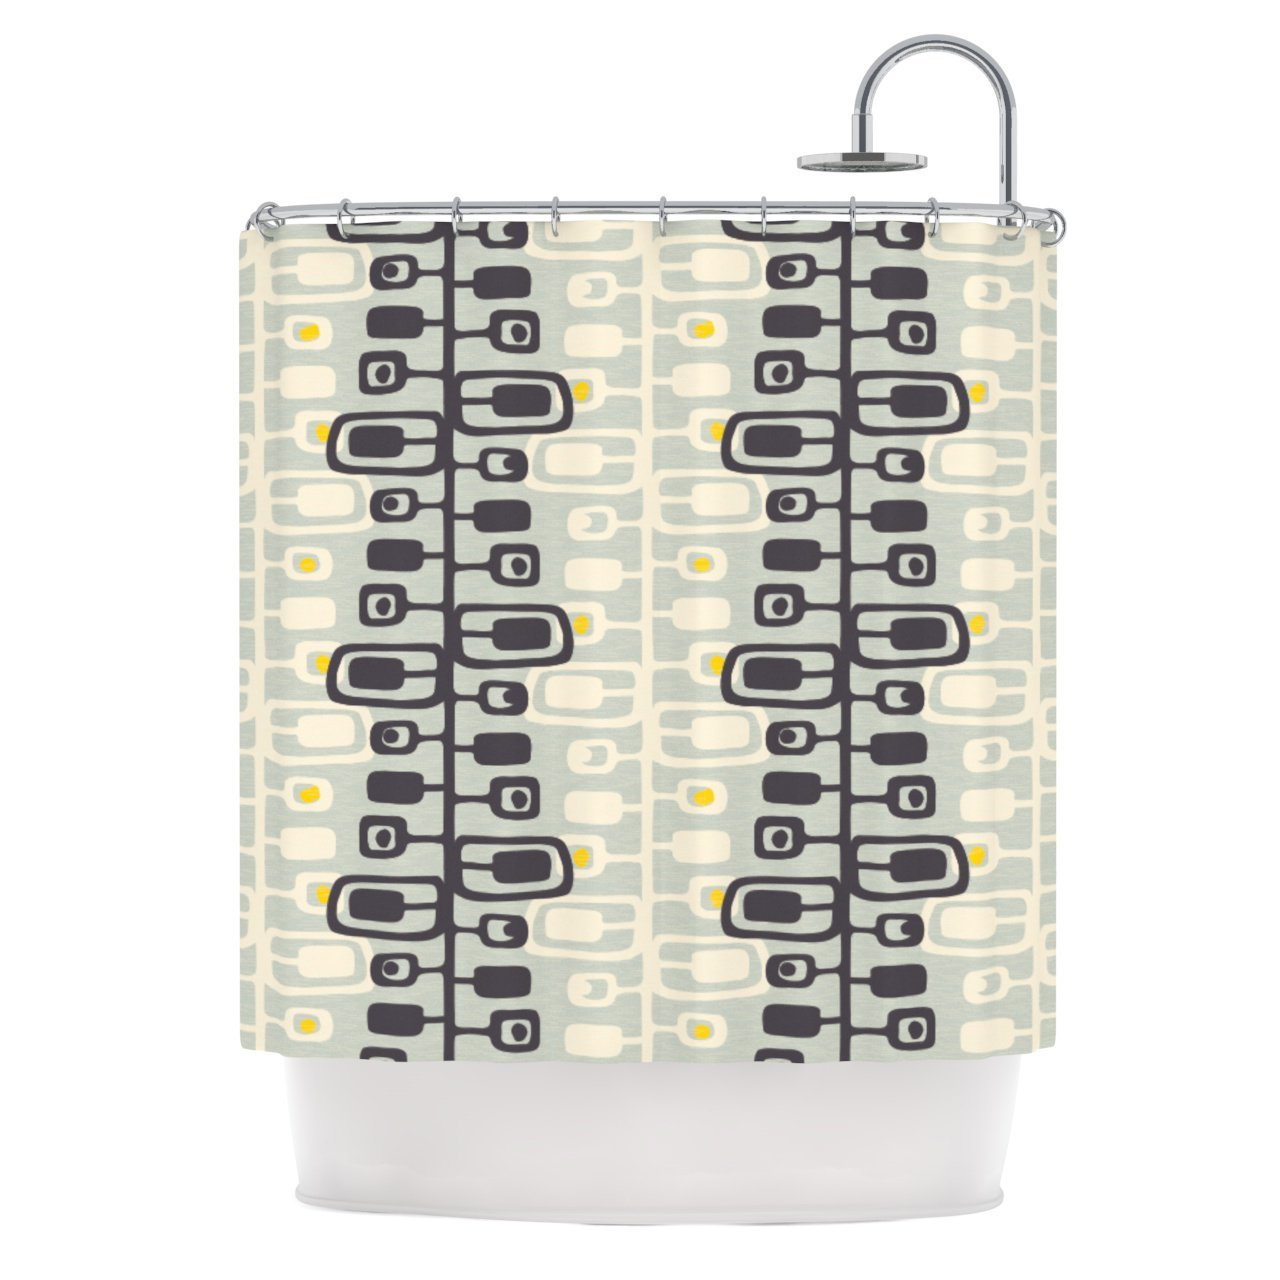 Kess InHouse Gill Eggleston 'Carnaby' Shower Curtain, 69 by 70-Inch